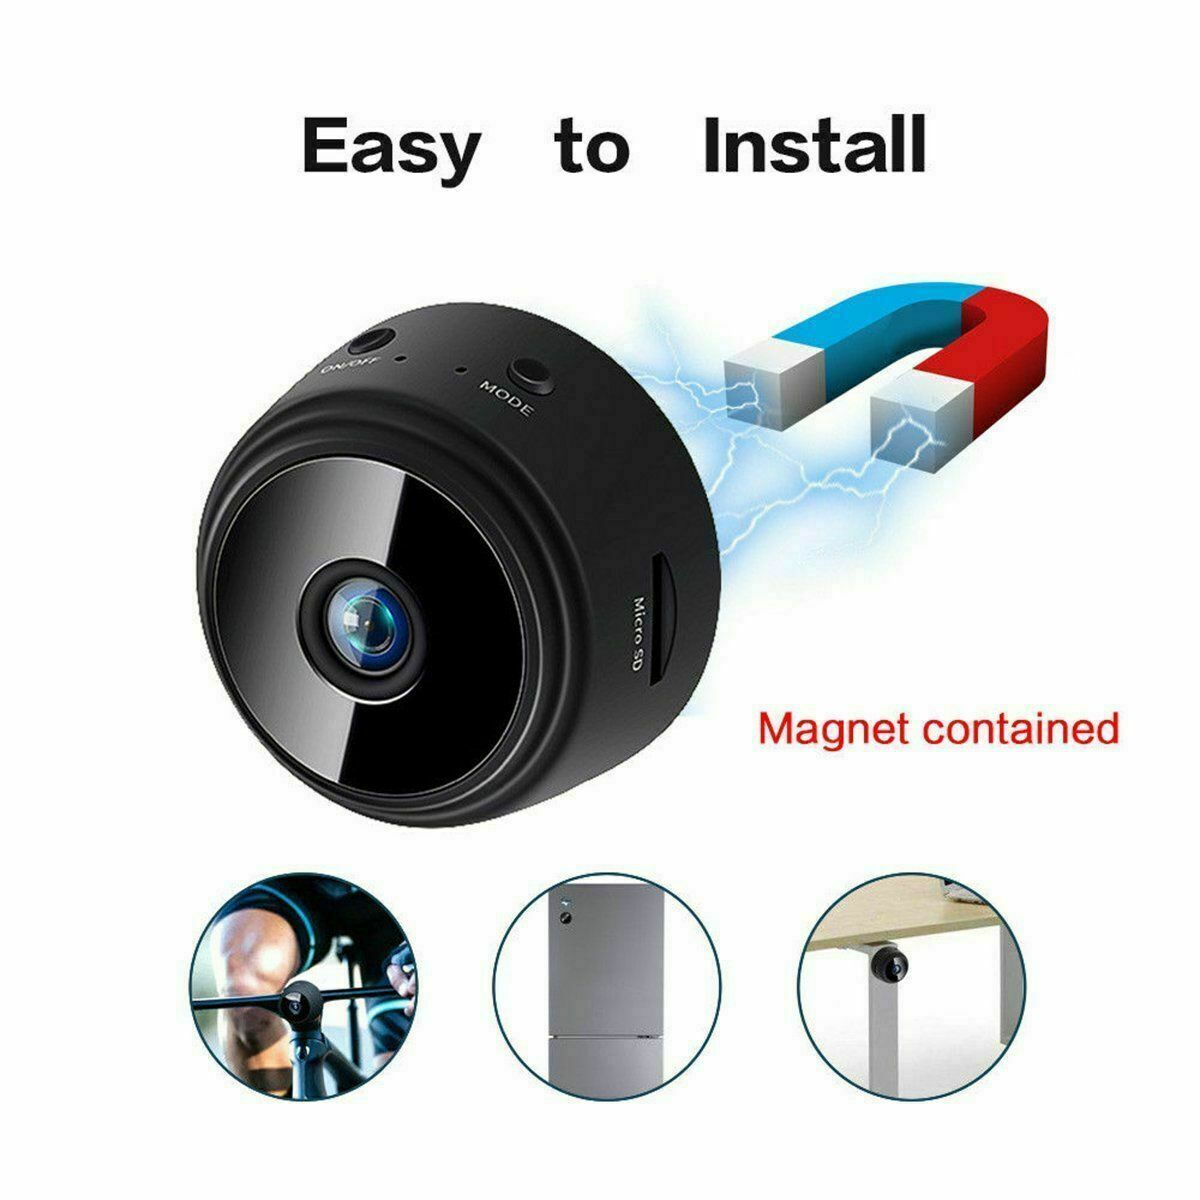 1080P HD WIFI Remote Surveillance Camera Recorder